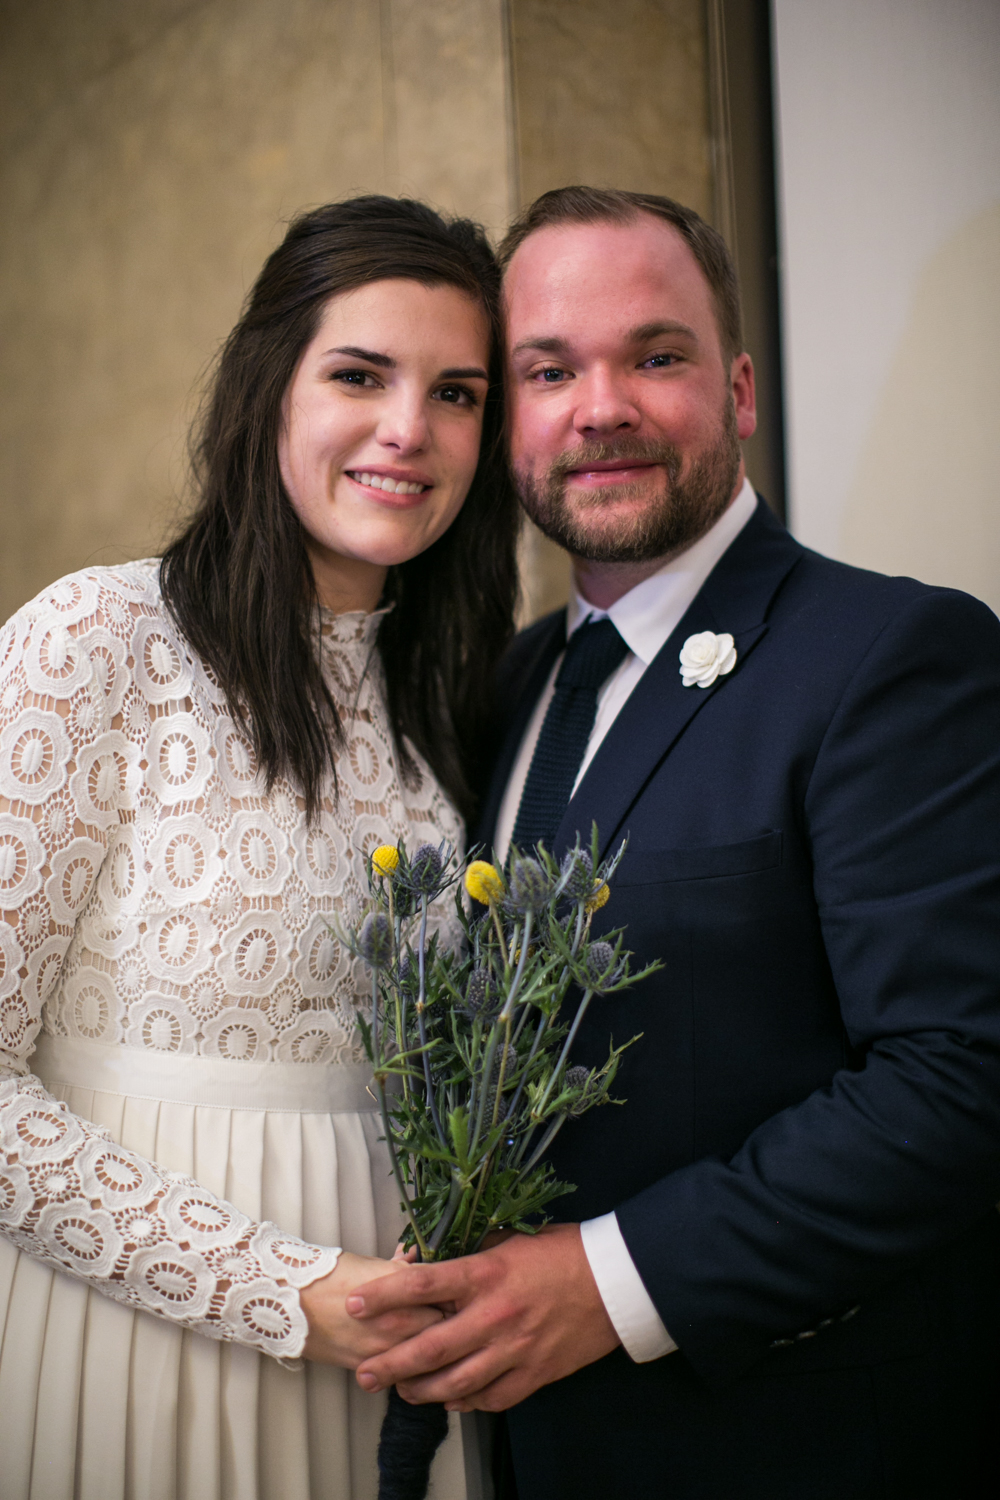 Photograph of bride and groom on elopement day